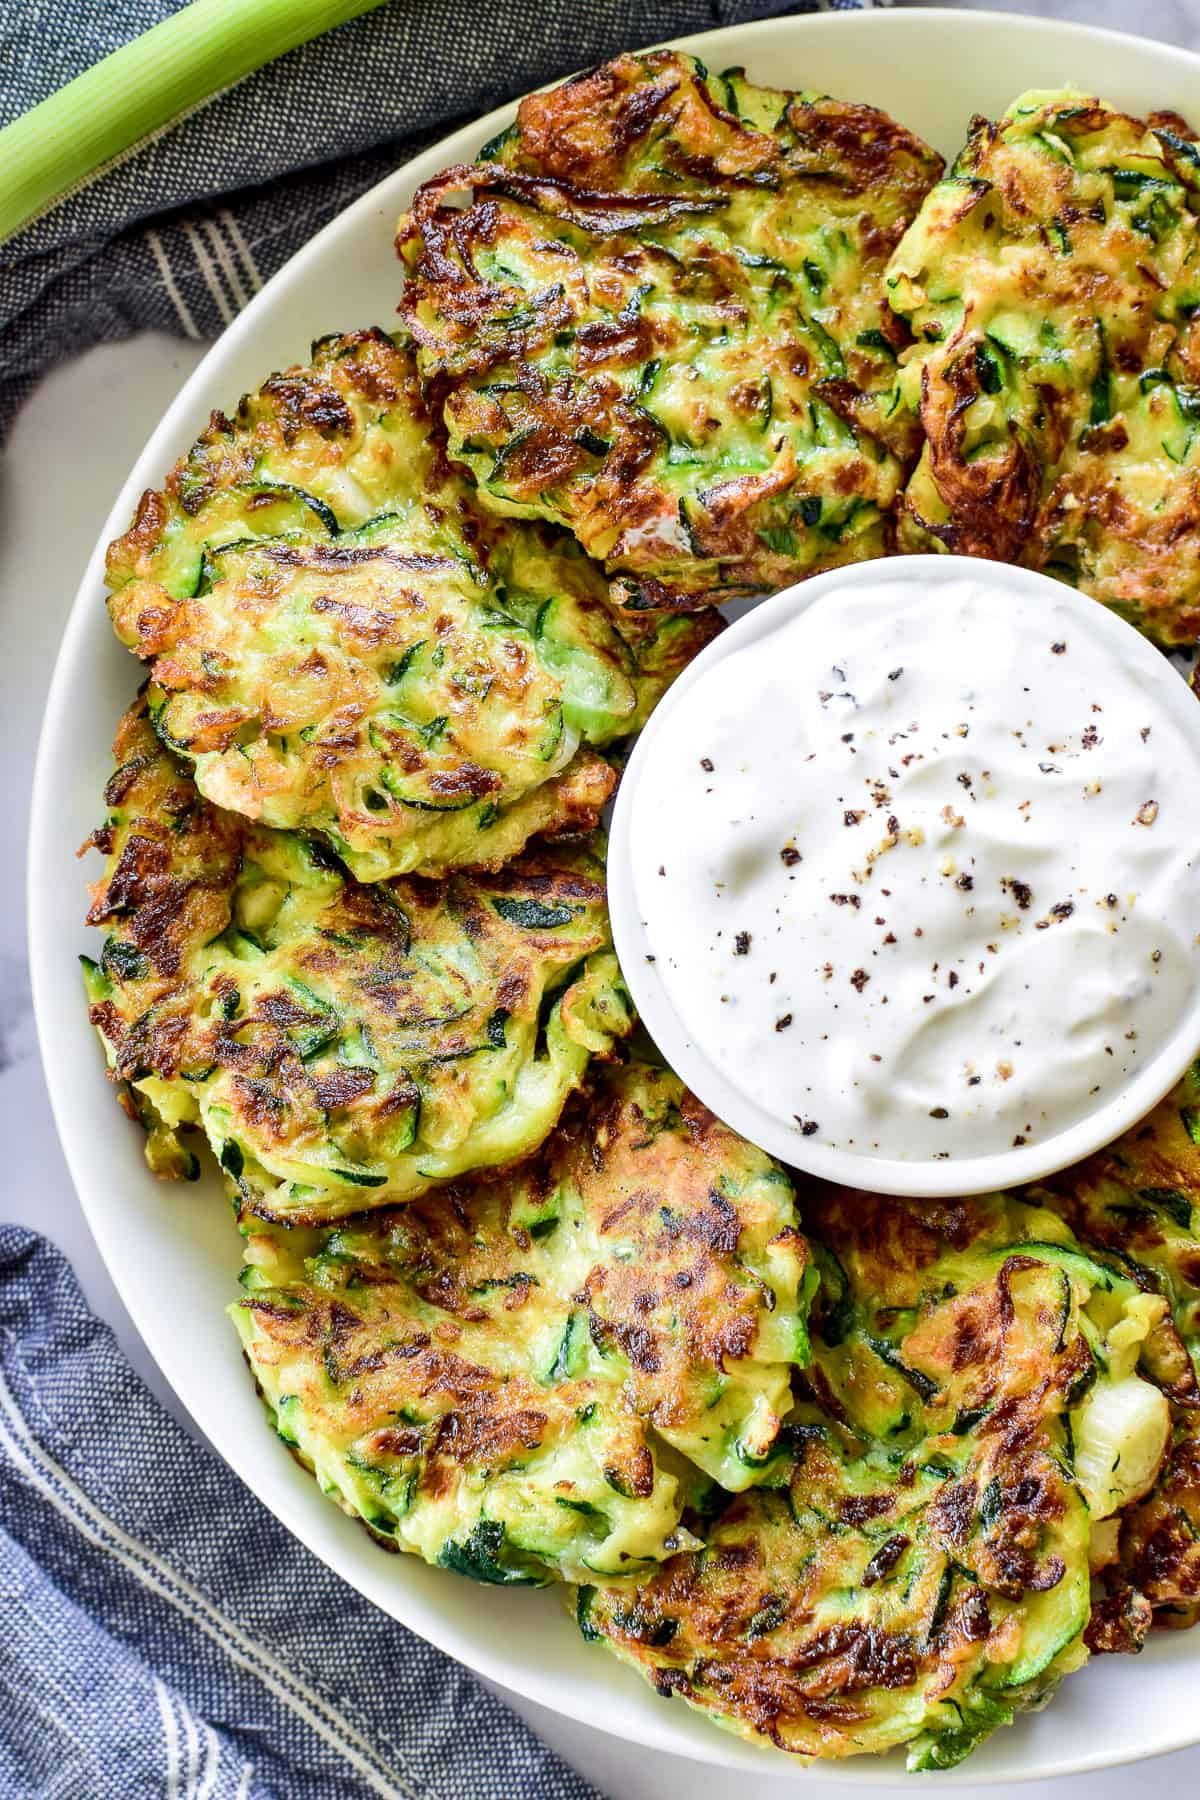 Overhead shot of zucchini fritters on a plate with dipping sauce in the middle